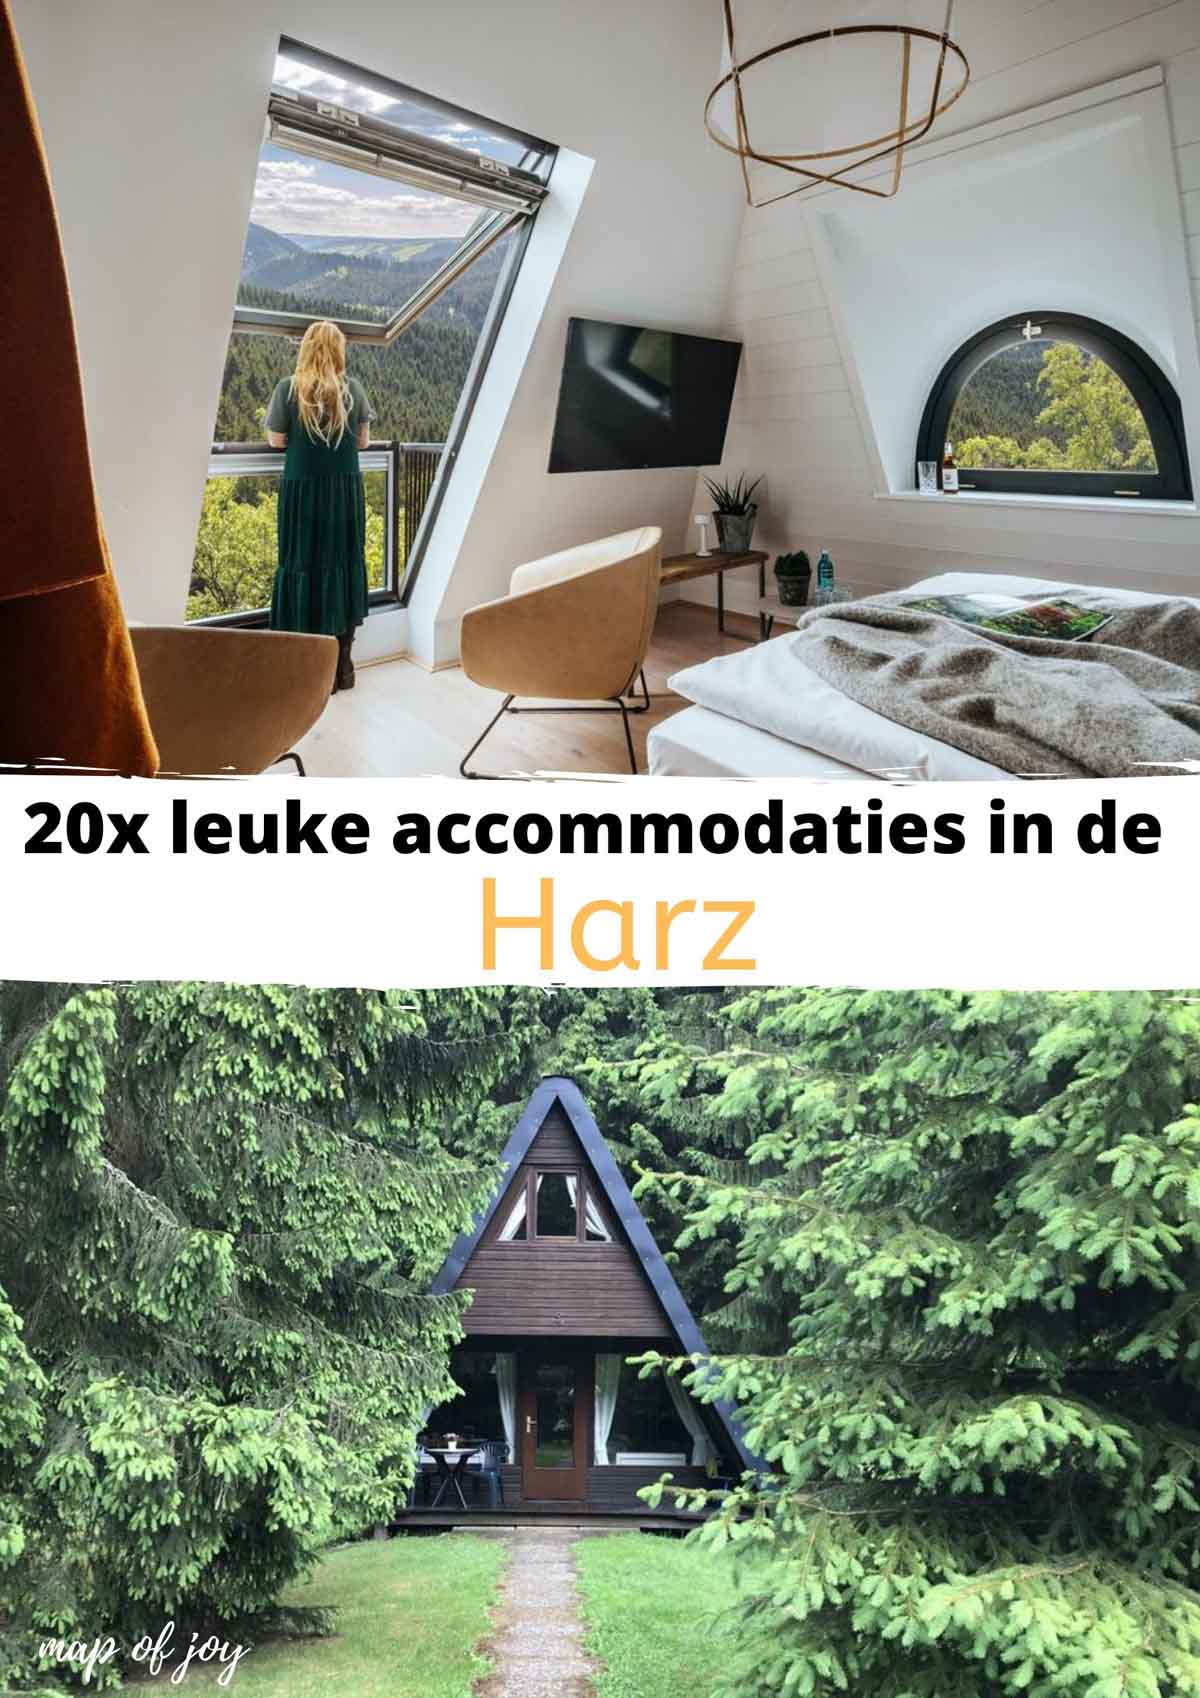 20x leuke accommodaties in de Harz [en de hond mag mee]